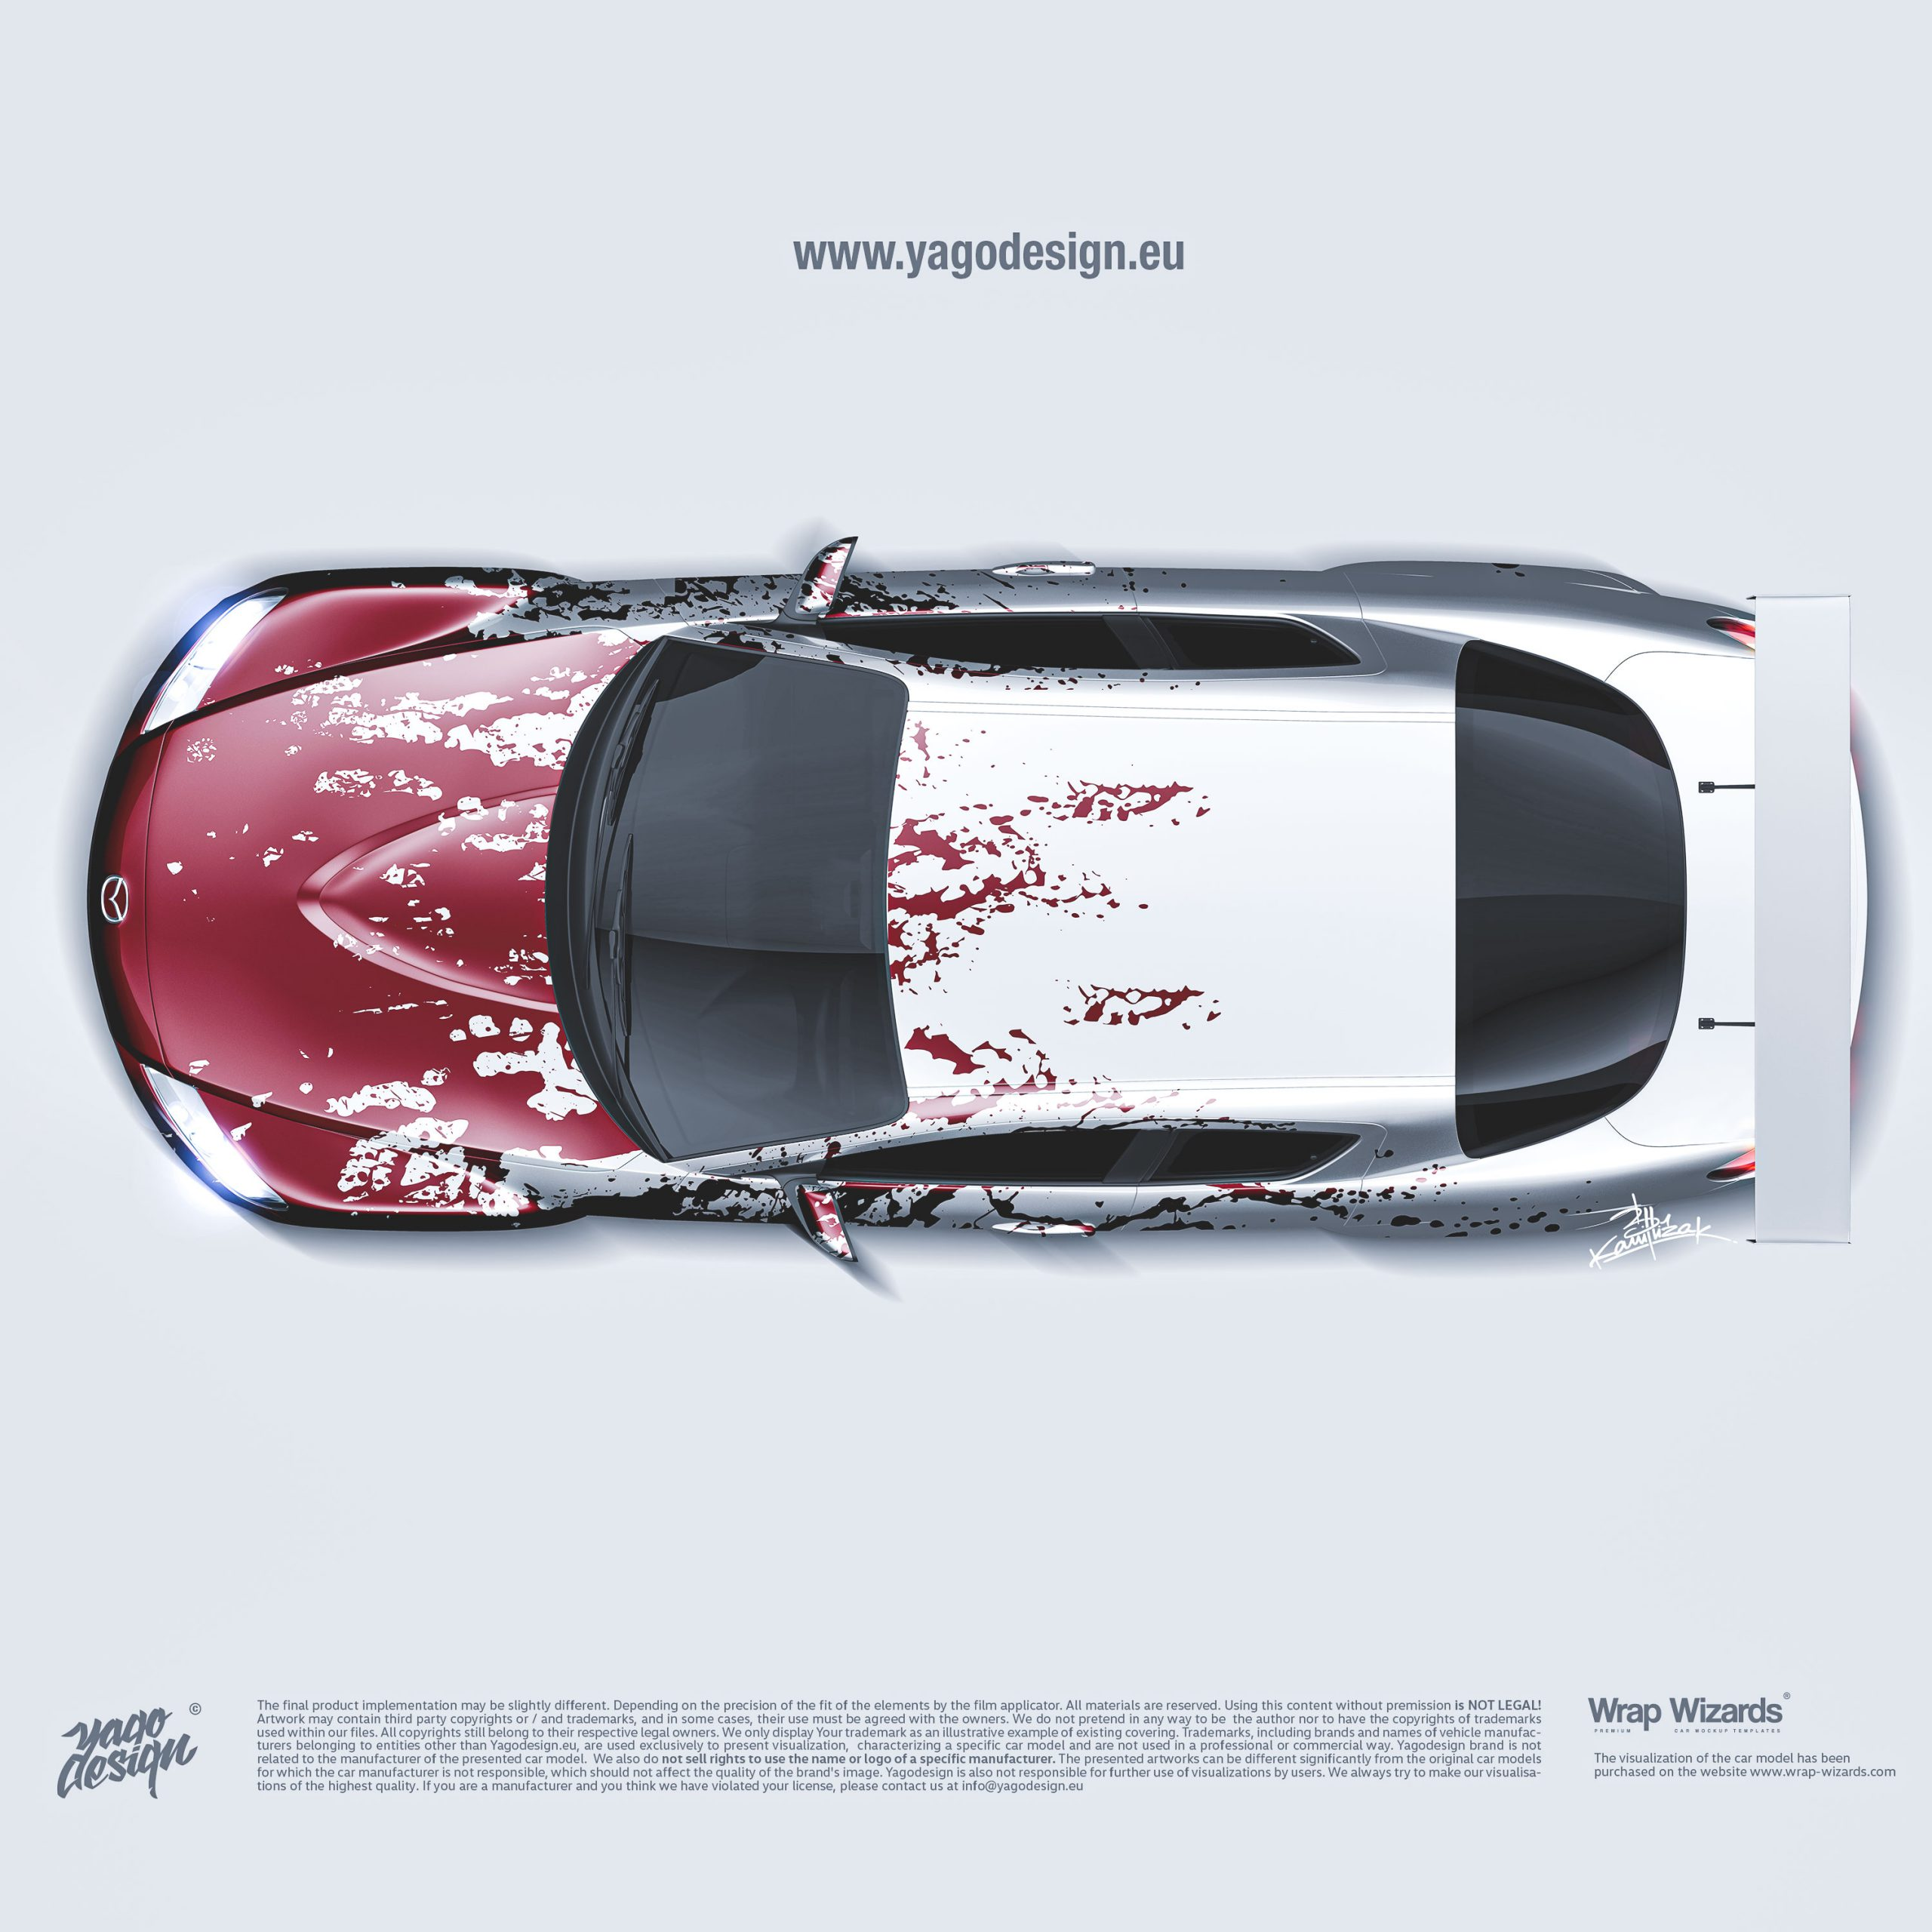 Mazda-RX-8-by-Yagodesign-Car-Wrapping-Automotive-Design-Studio3-scaled